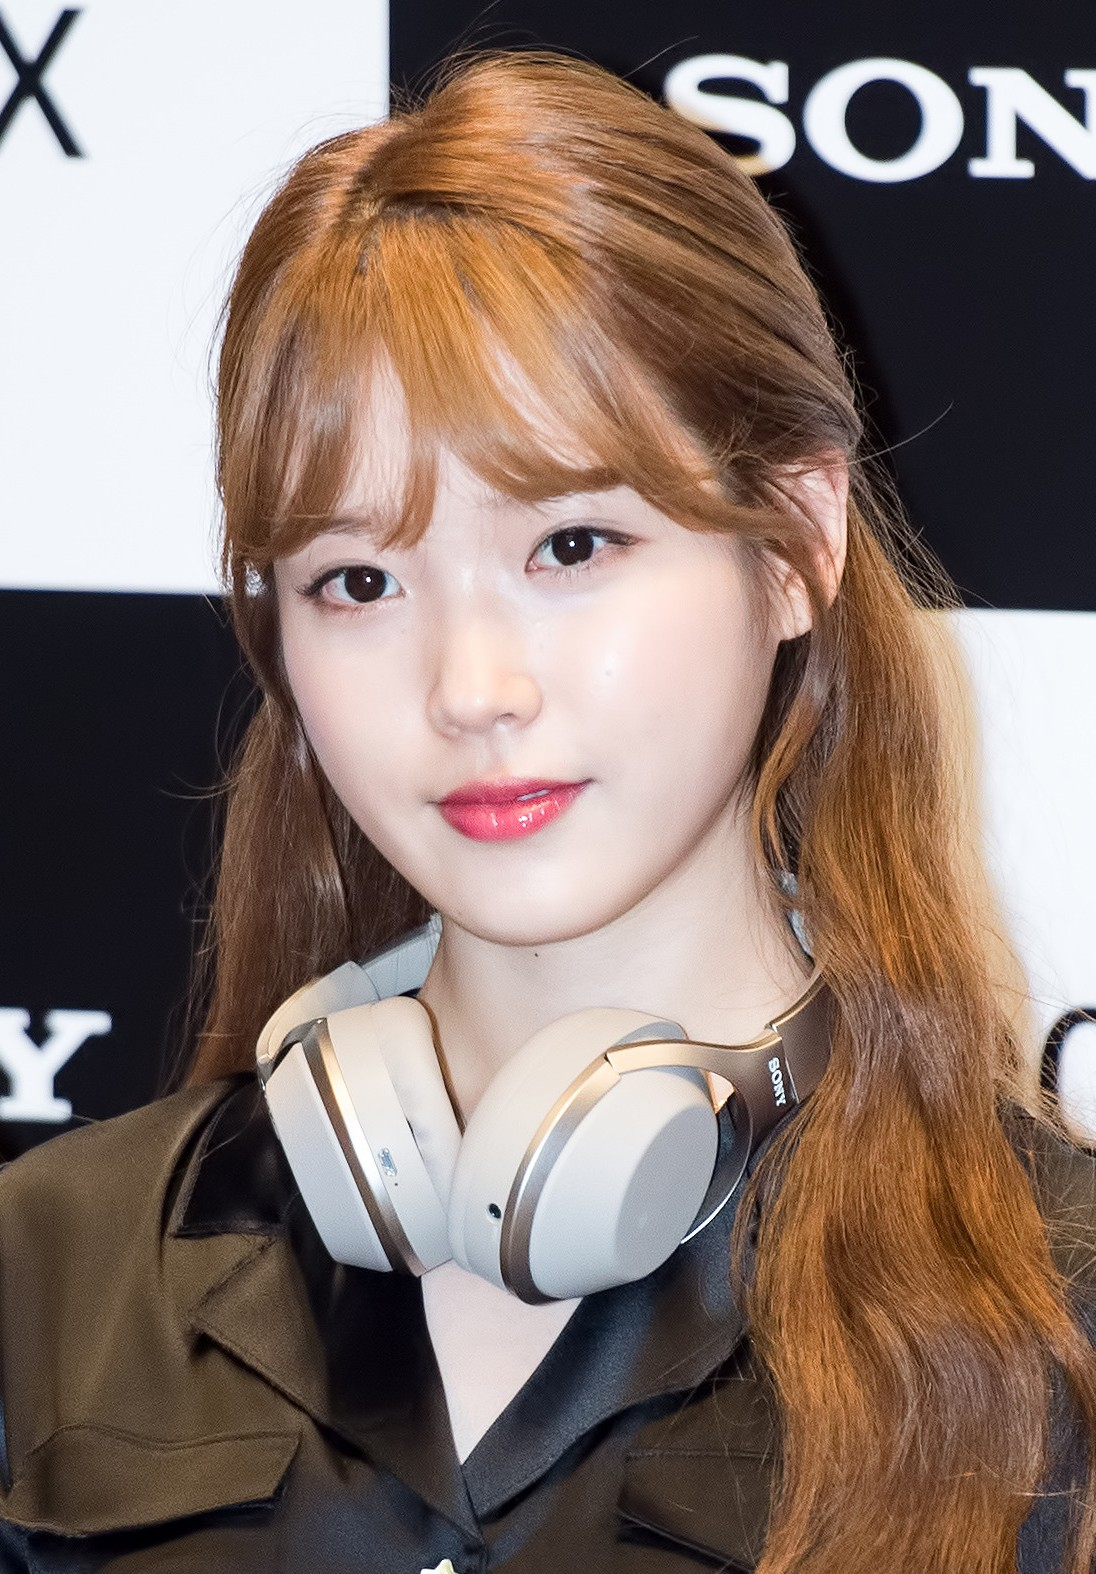 FileIU At Sony New Product Launching Event 20 September 2017 03